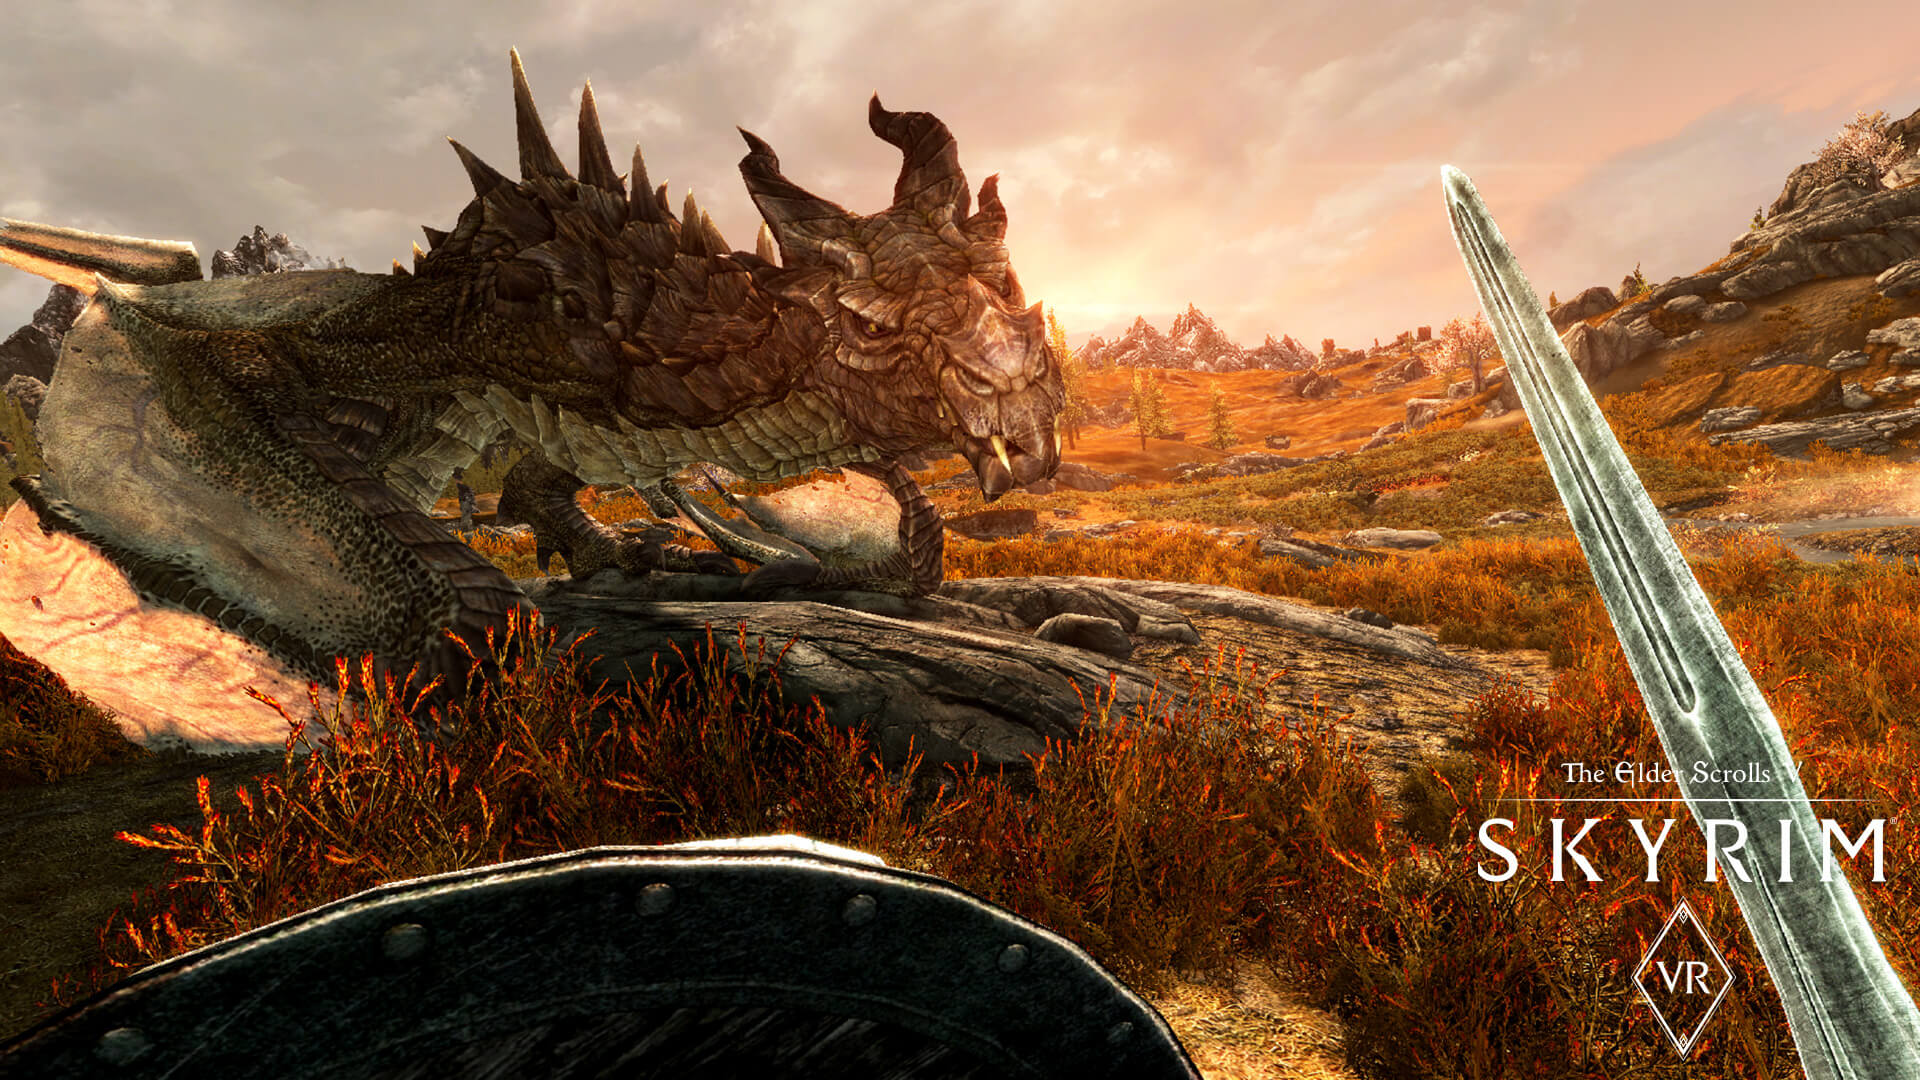 Skyrim VR Visual Noise Reduction is a must-have mod that increases